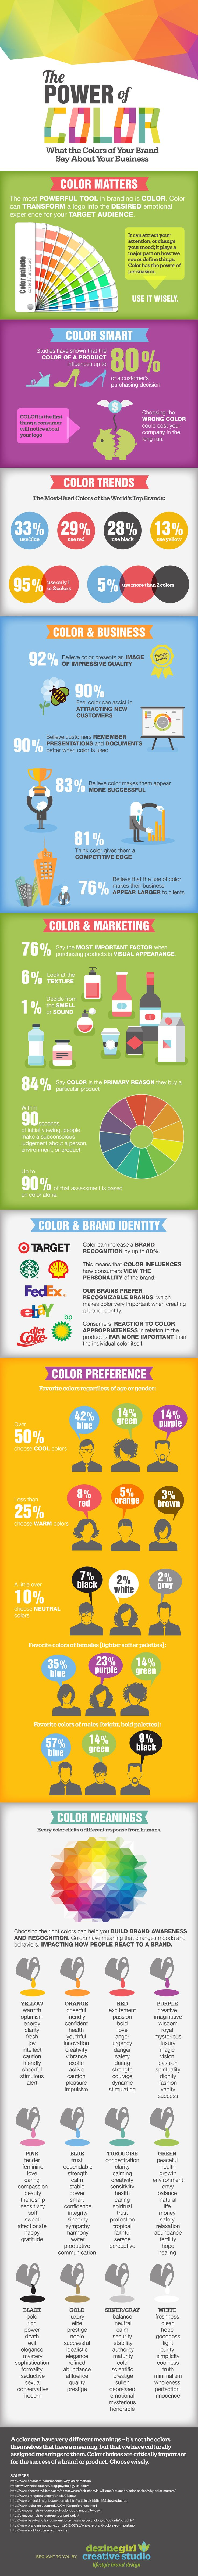 The Power of Color #infographic  http://www.visualistan.com/2014/06/the-power-of-color-infographic.html